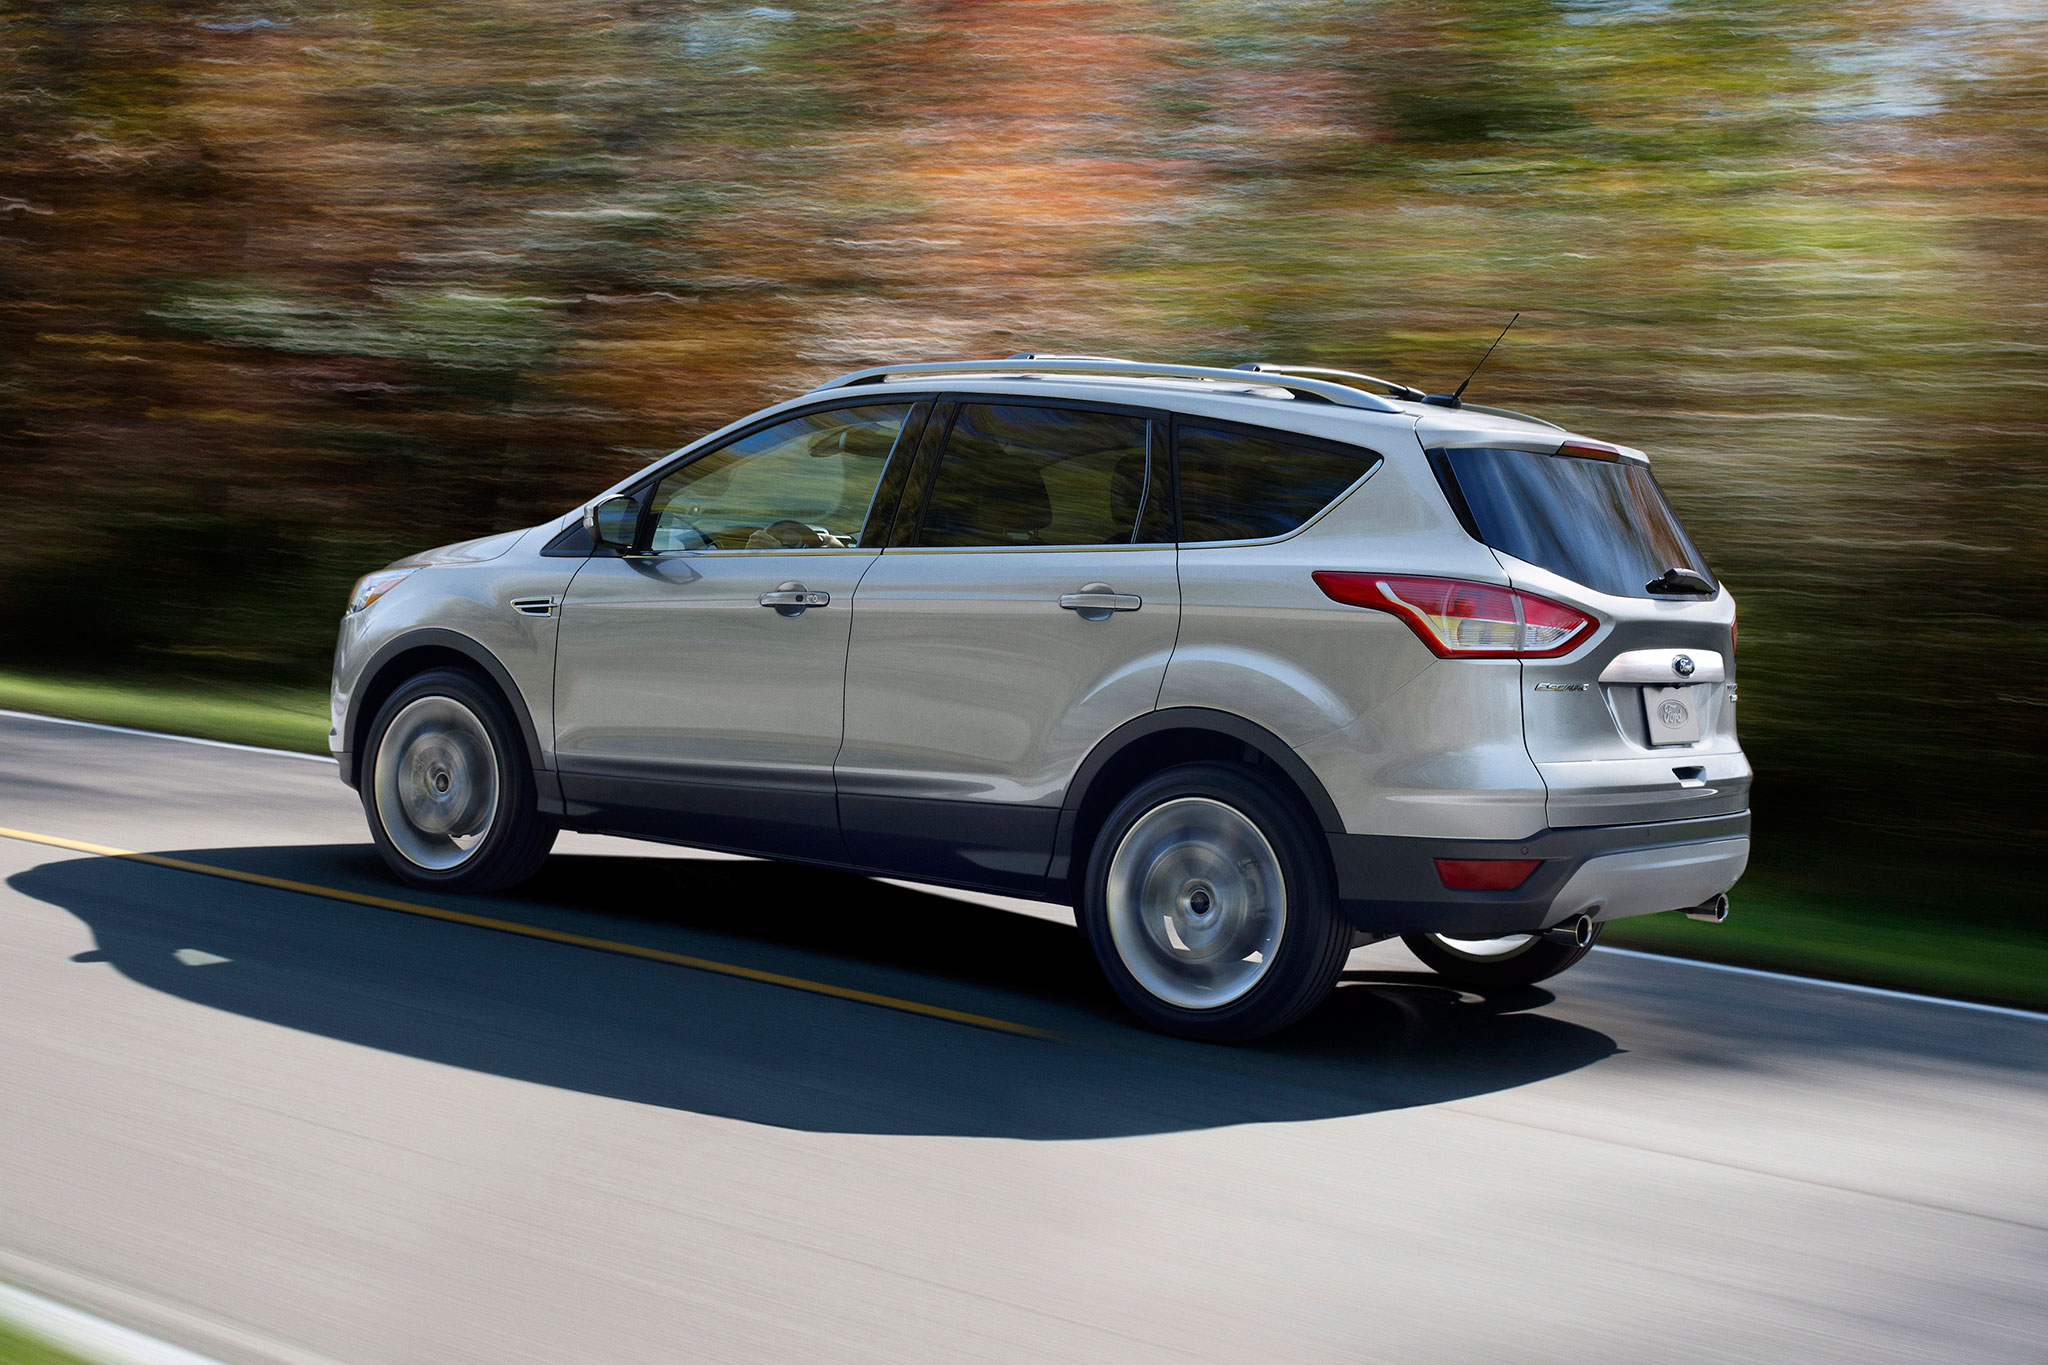 2014 Ford Escape Rear Drivers Side In Motion1